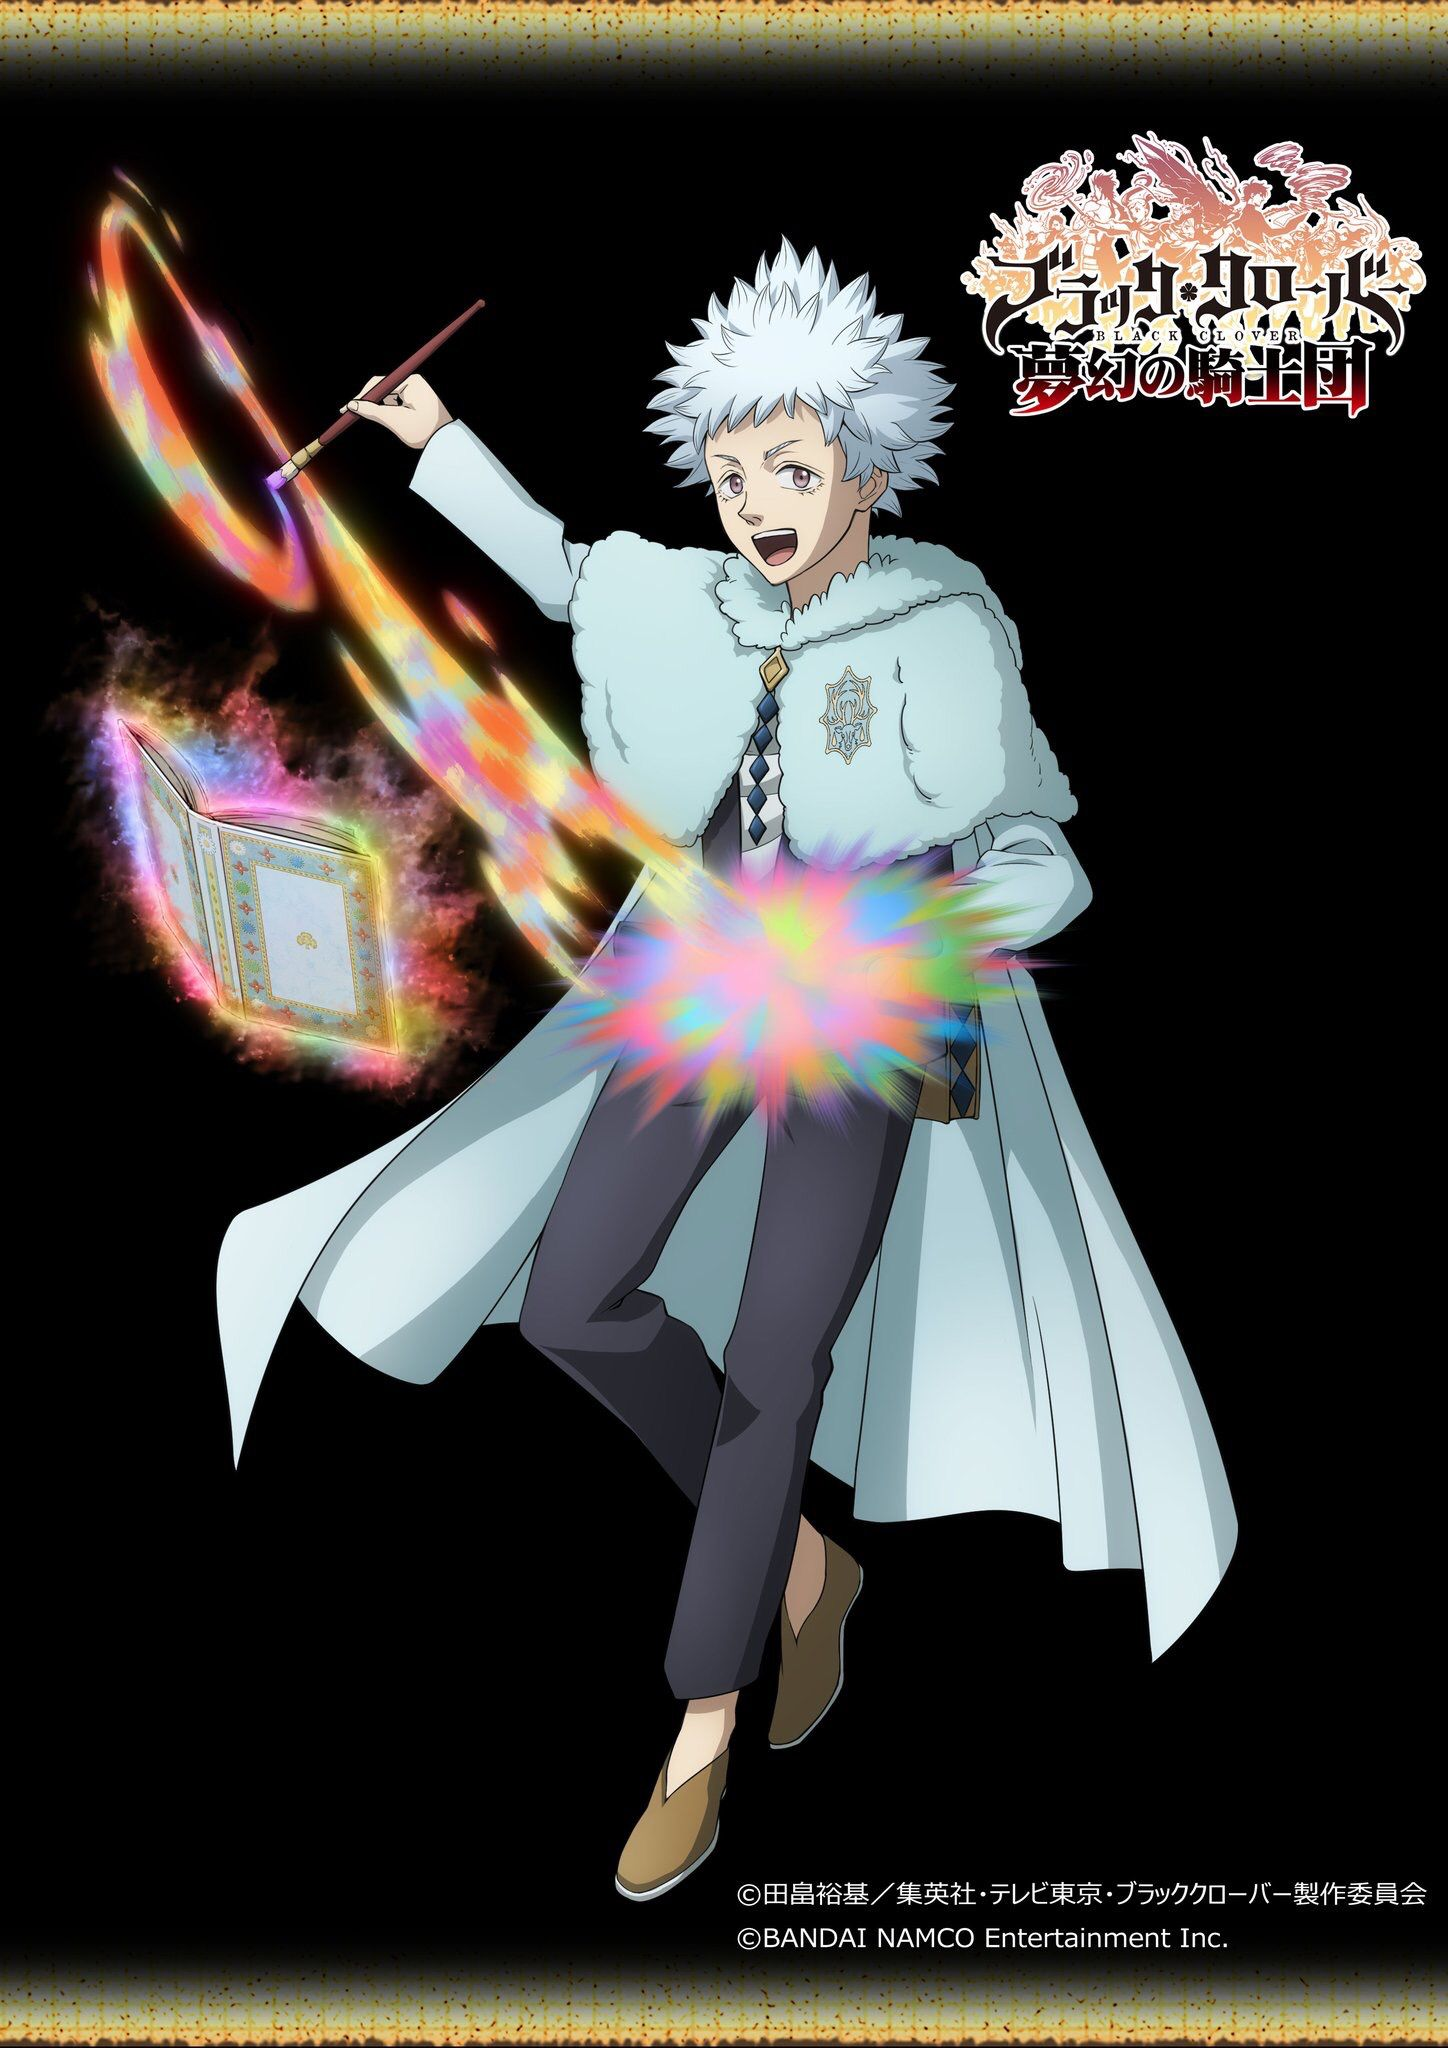 Blackclover Midnight Sun On Twitter Captain Of The Azure Deer Magic Knights Rill Boismortie Magic Paint Magic Affiliation Noble Of The Clover Kingdom Volume 12 Is Where The Anime Is Currently